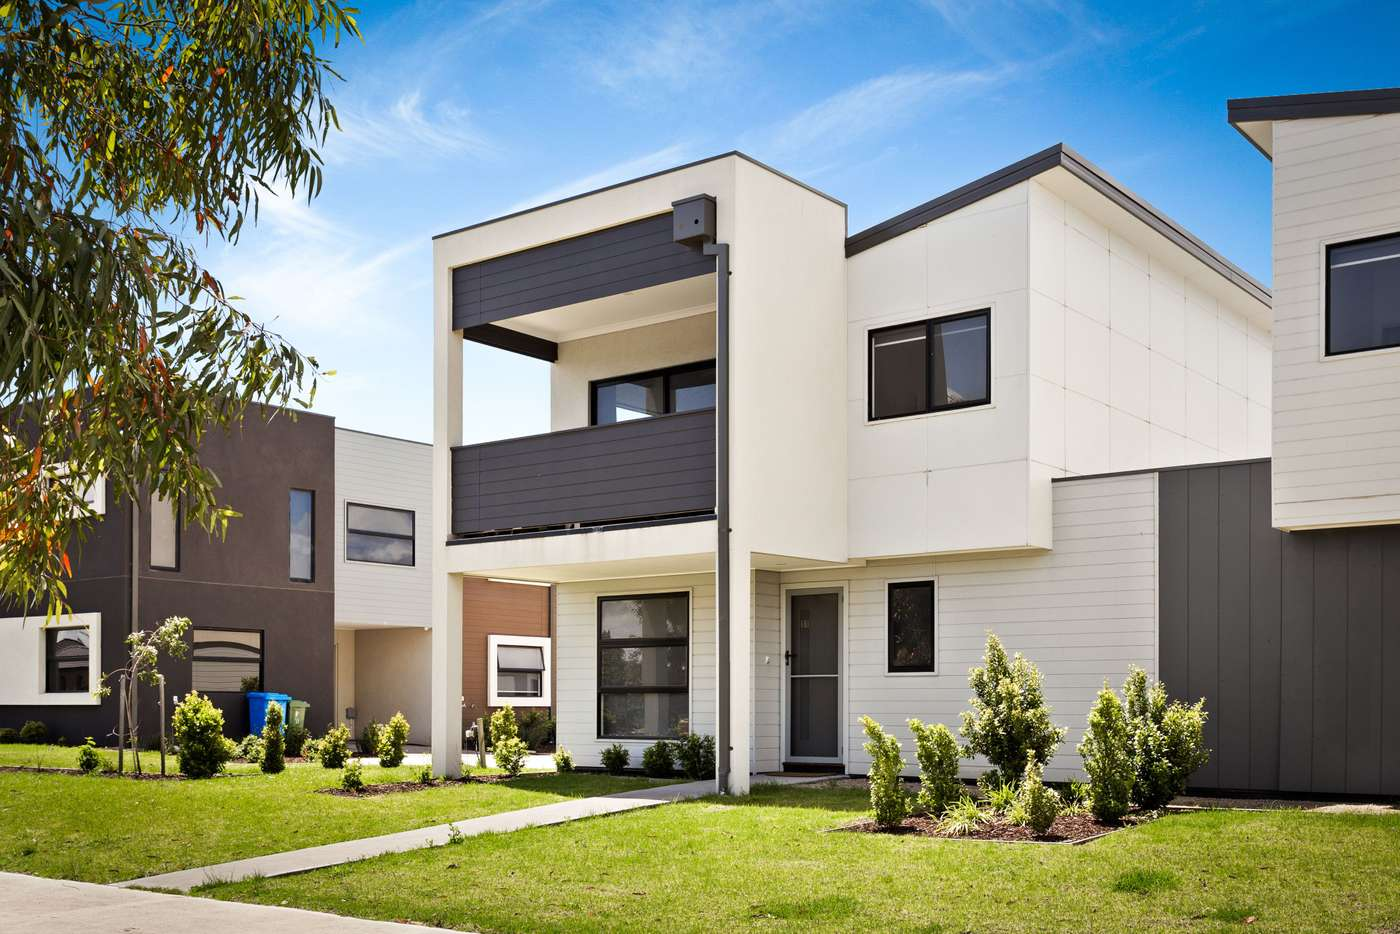 Main view of Homely unit listing, 11 Nugget Way, Cranbourne East VIC 3977